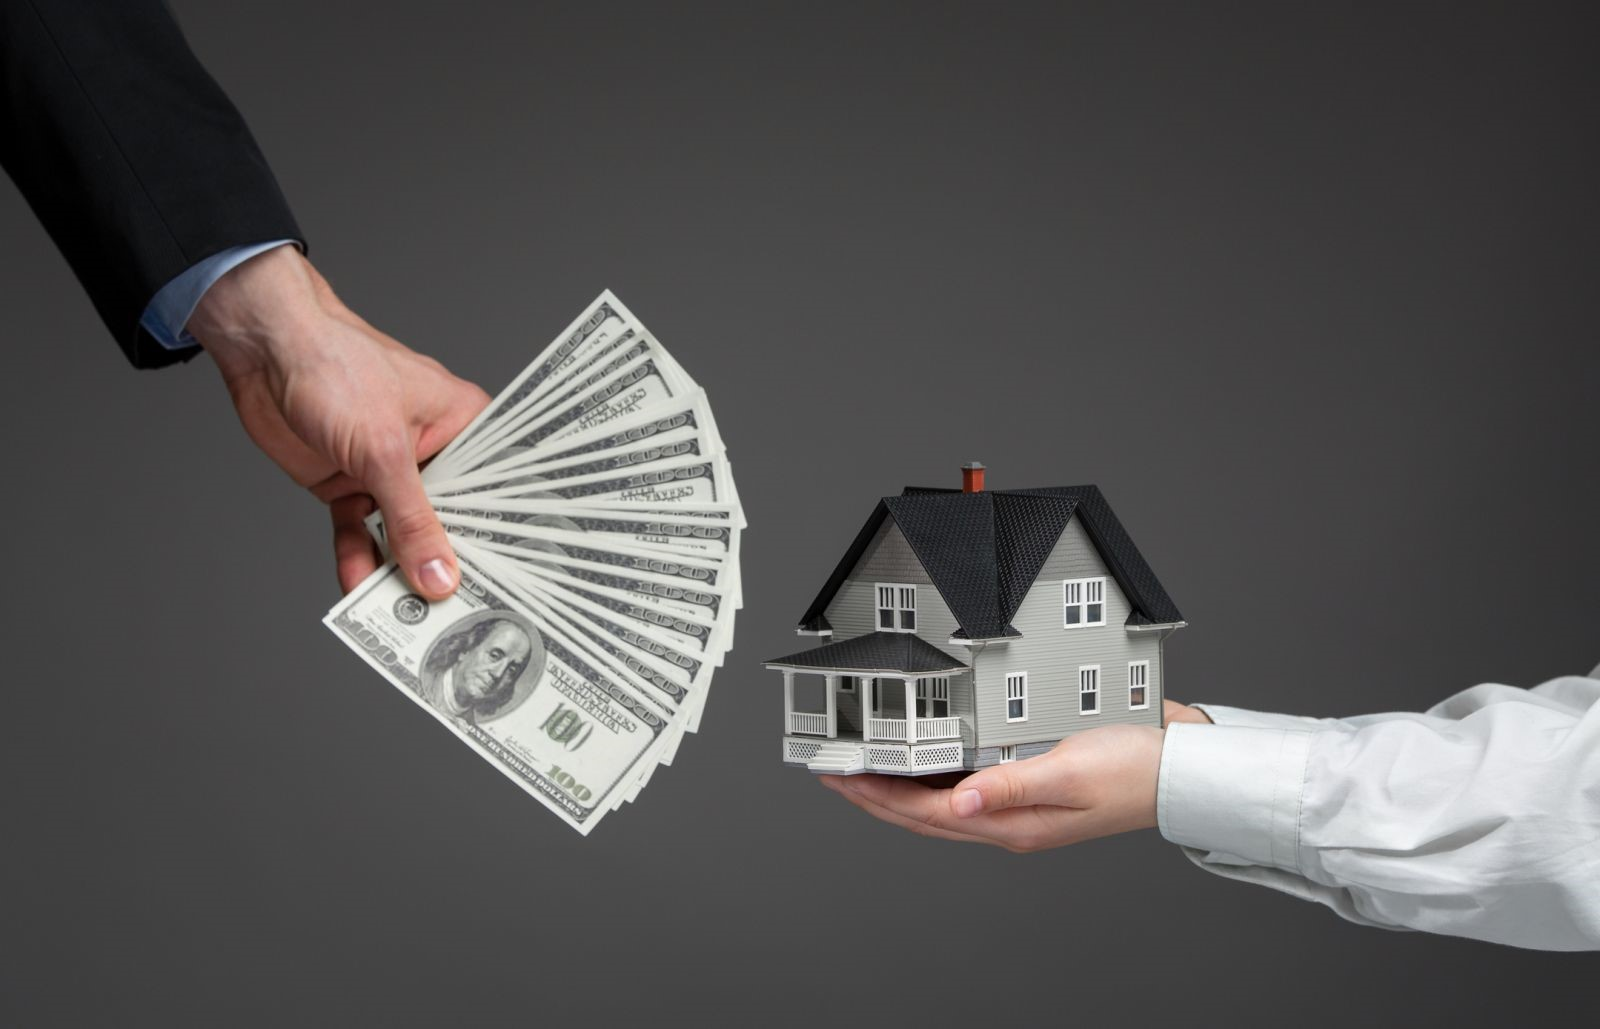 Preparing yourself monetarily for your first home